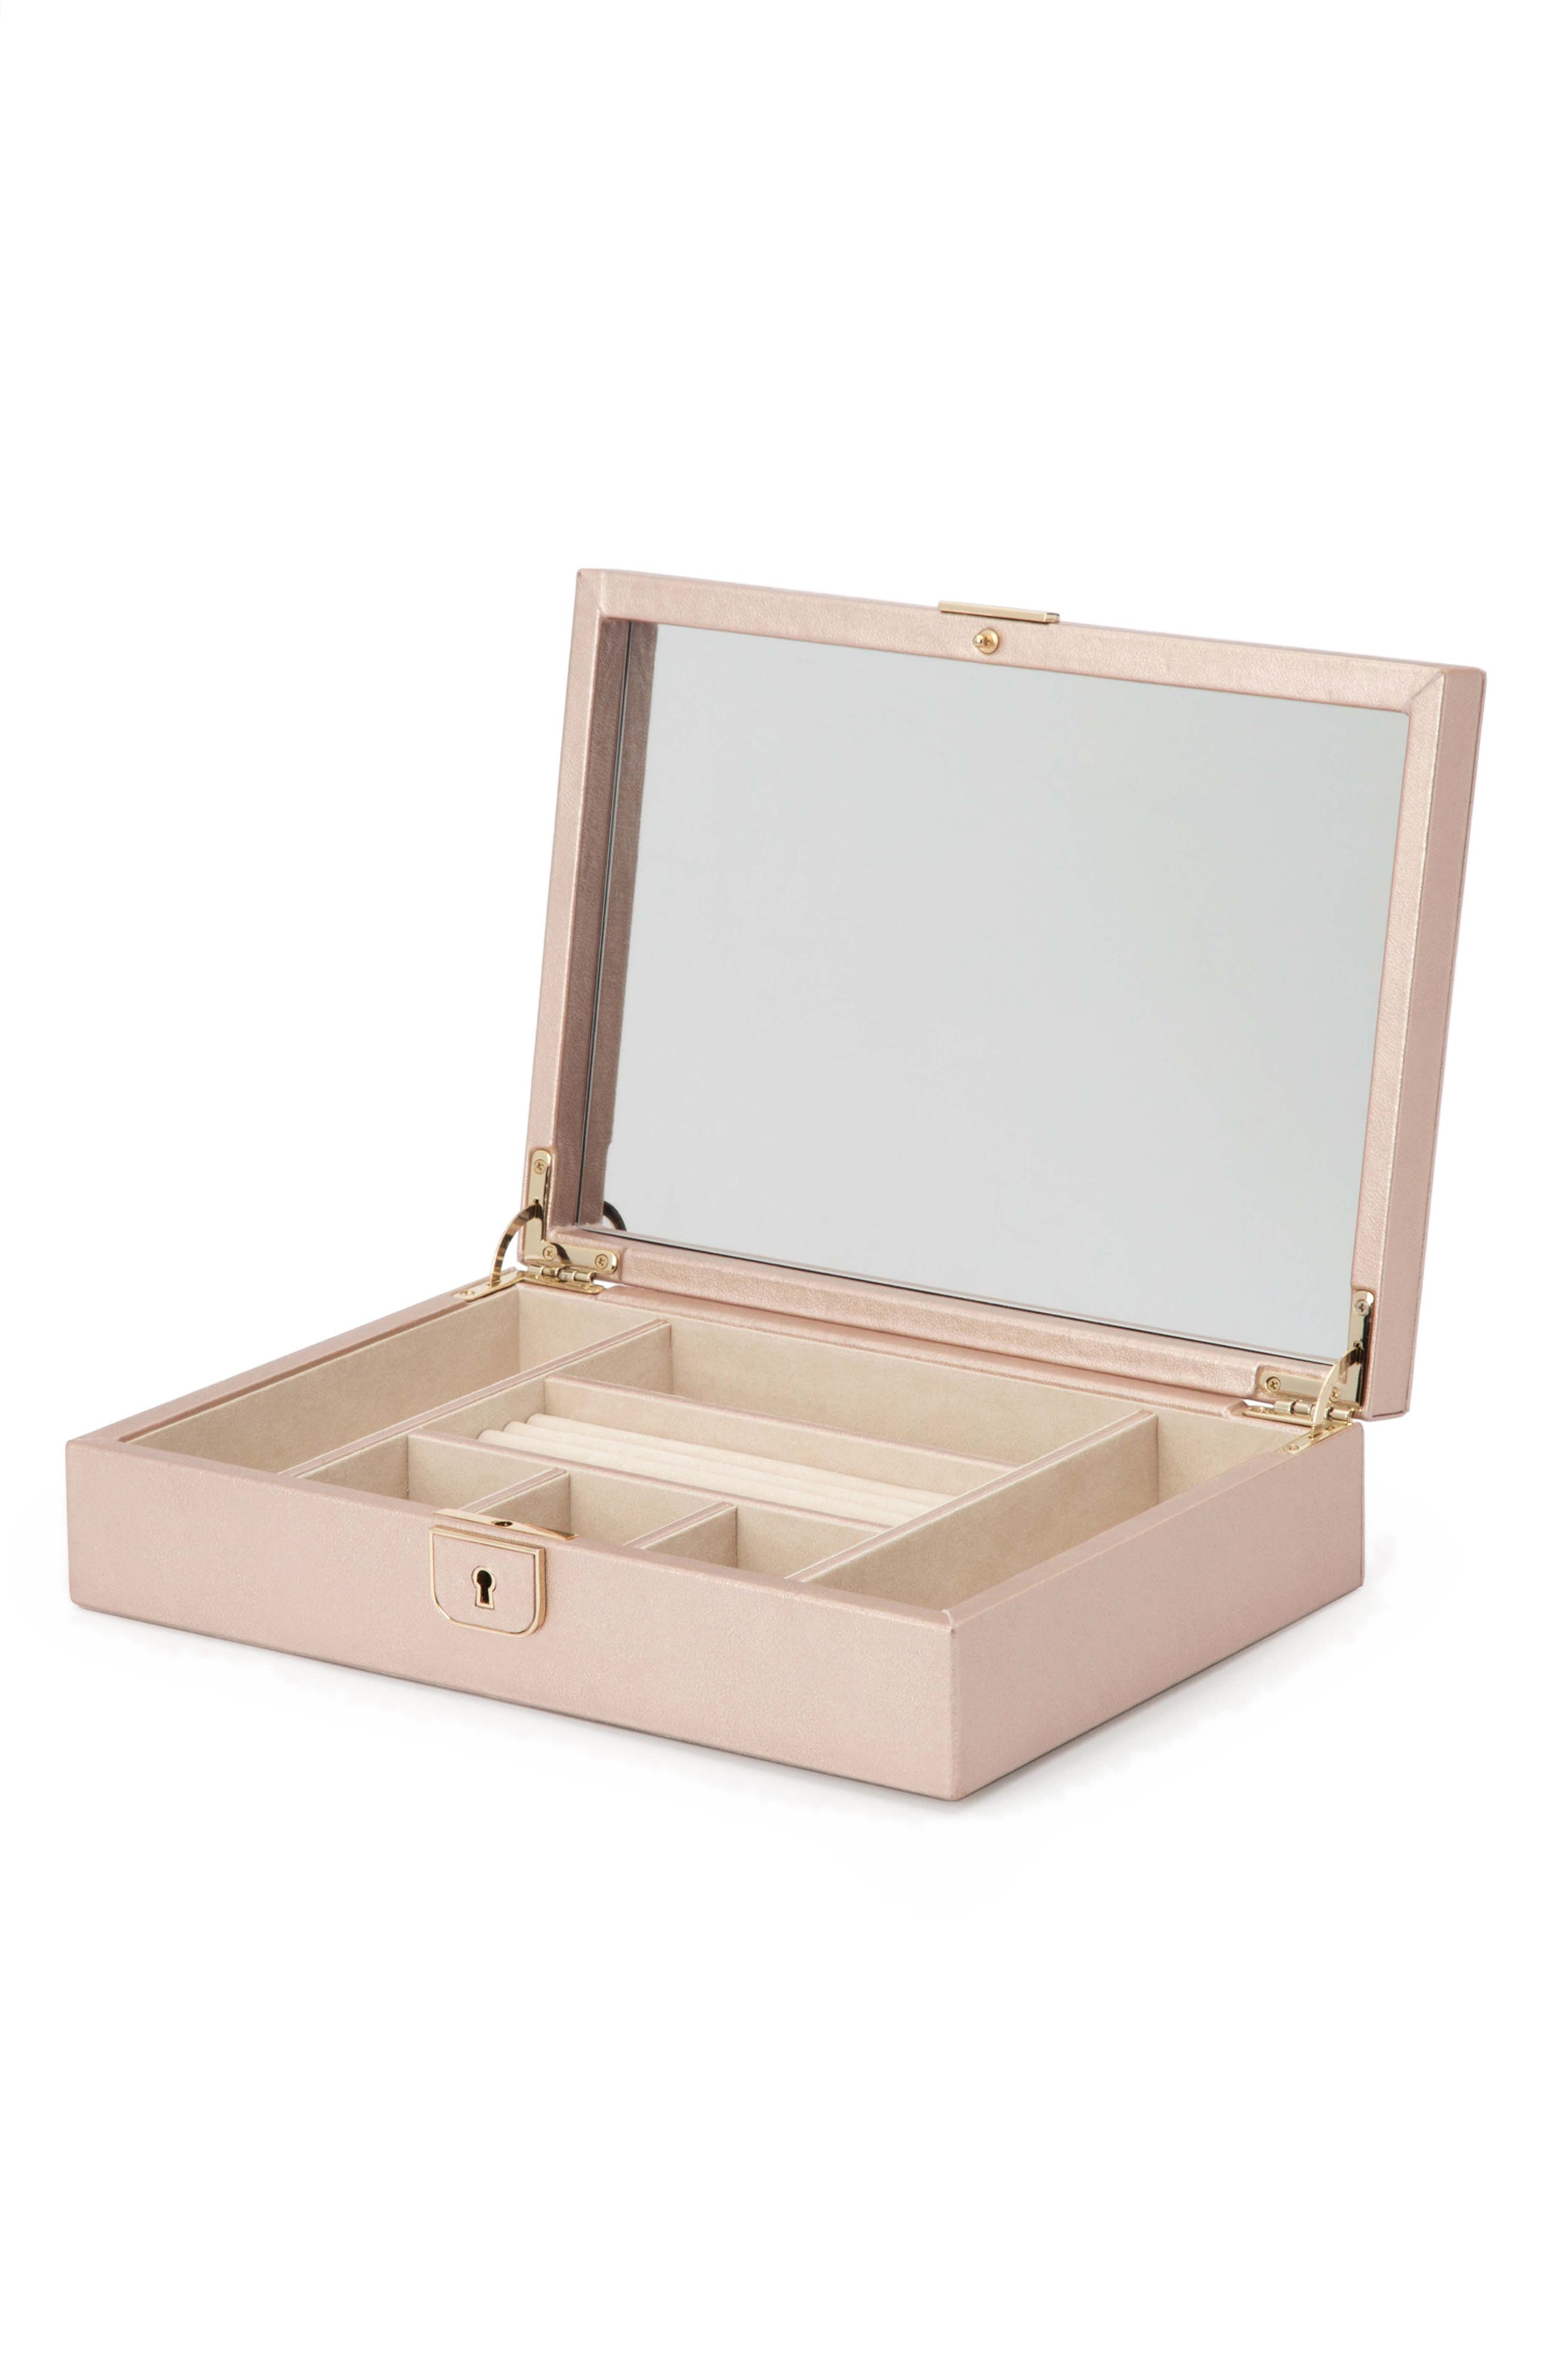 Palermo Medium Jewelry Box,                             Alternate thumbnail 3, color,                             ROSE GOLD